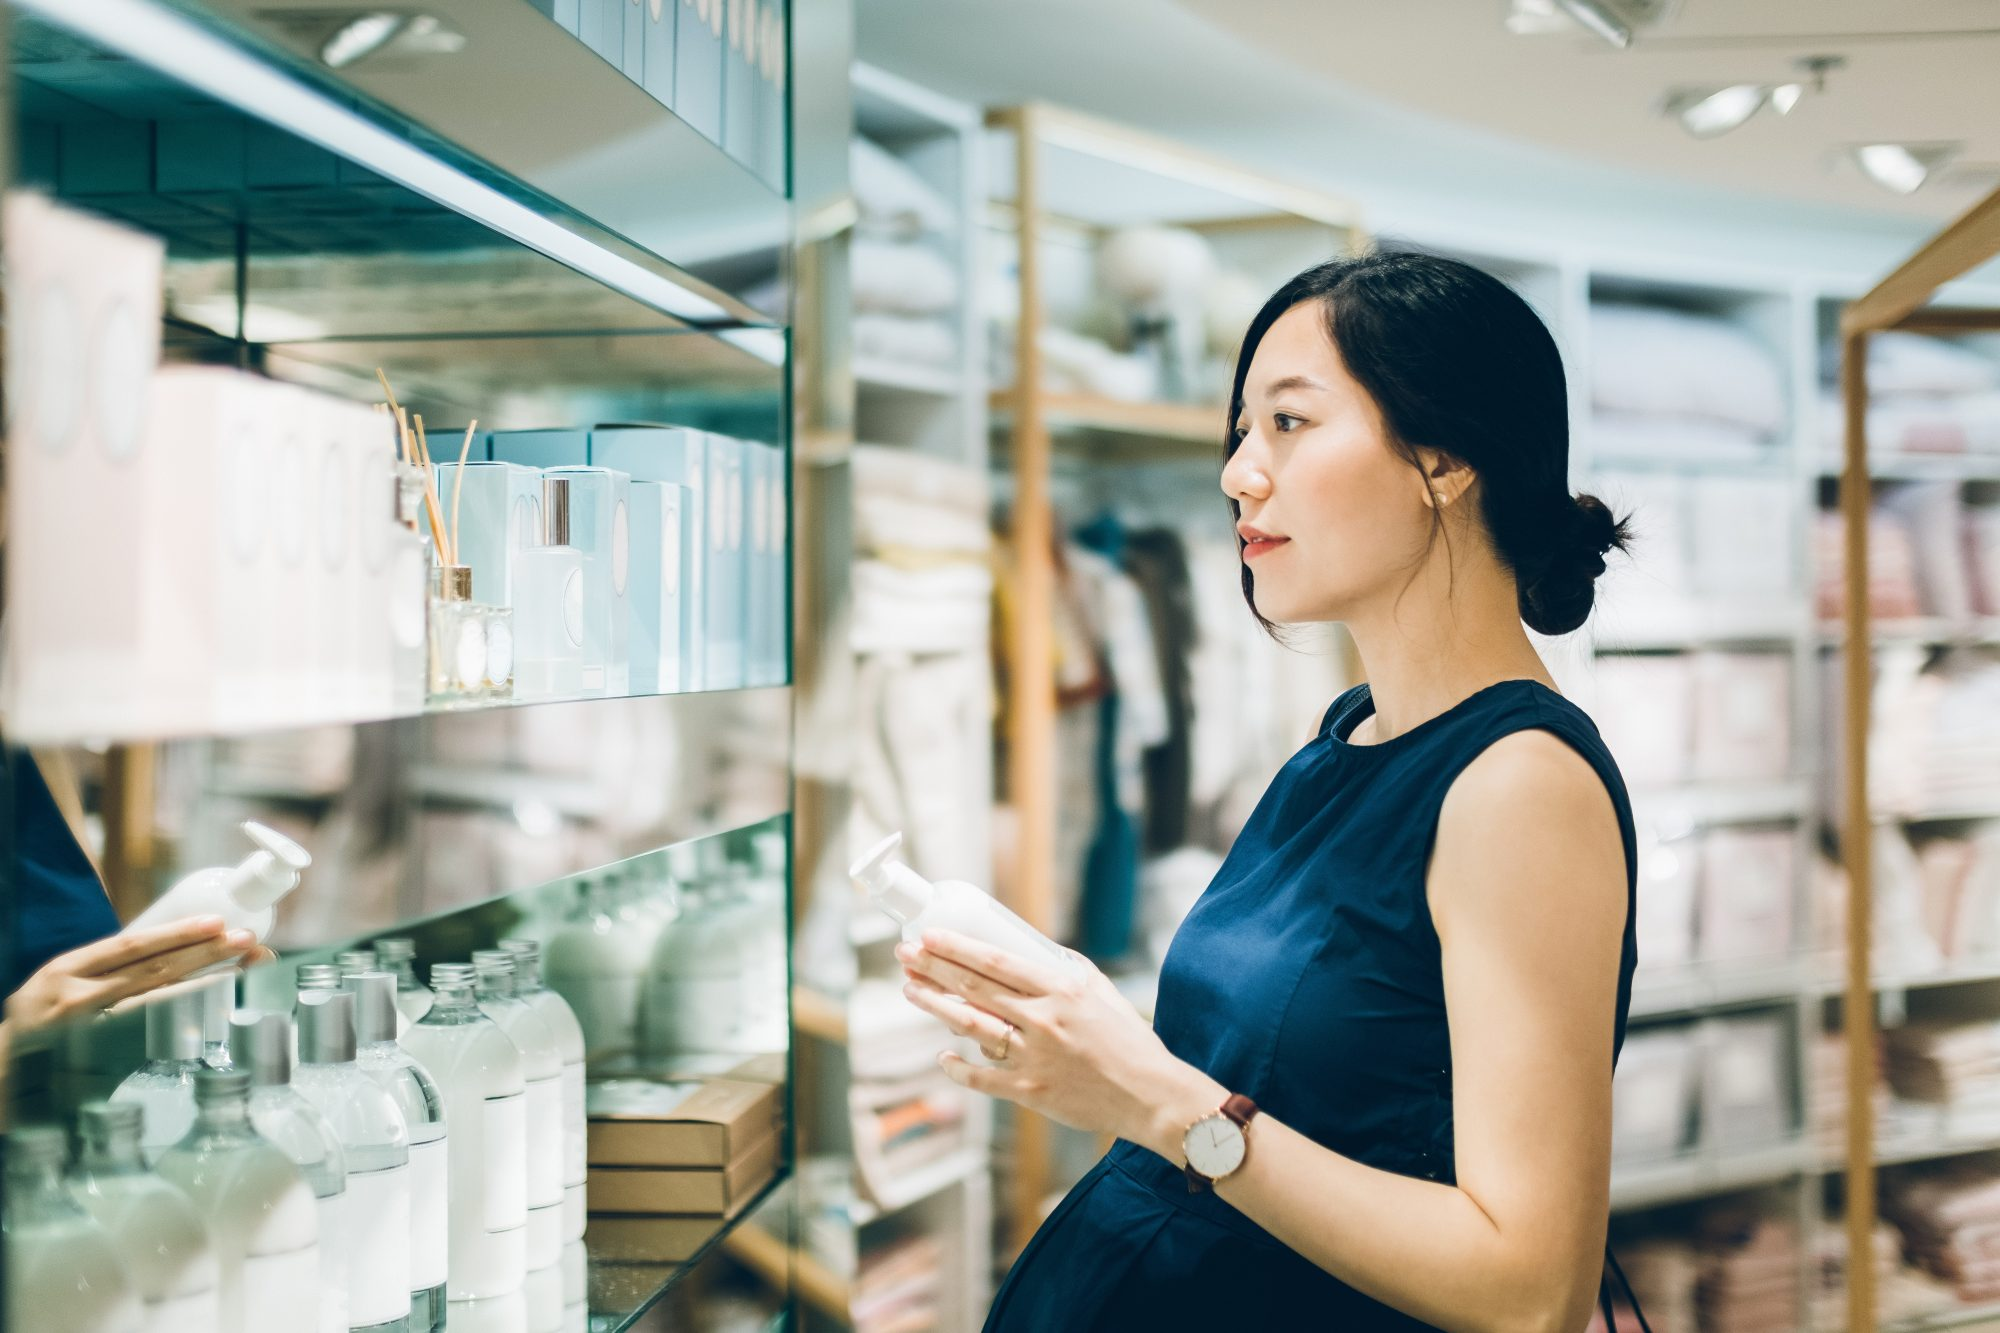 beauty-ingredient-labels: pregnant woman shopping for skincare